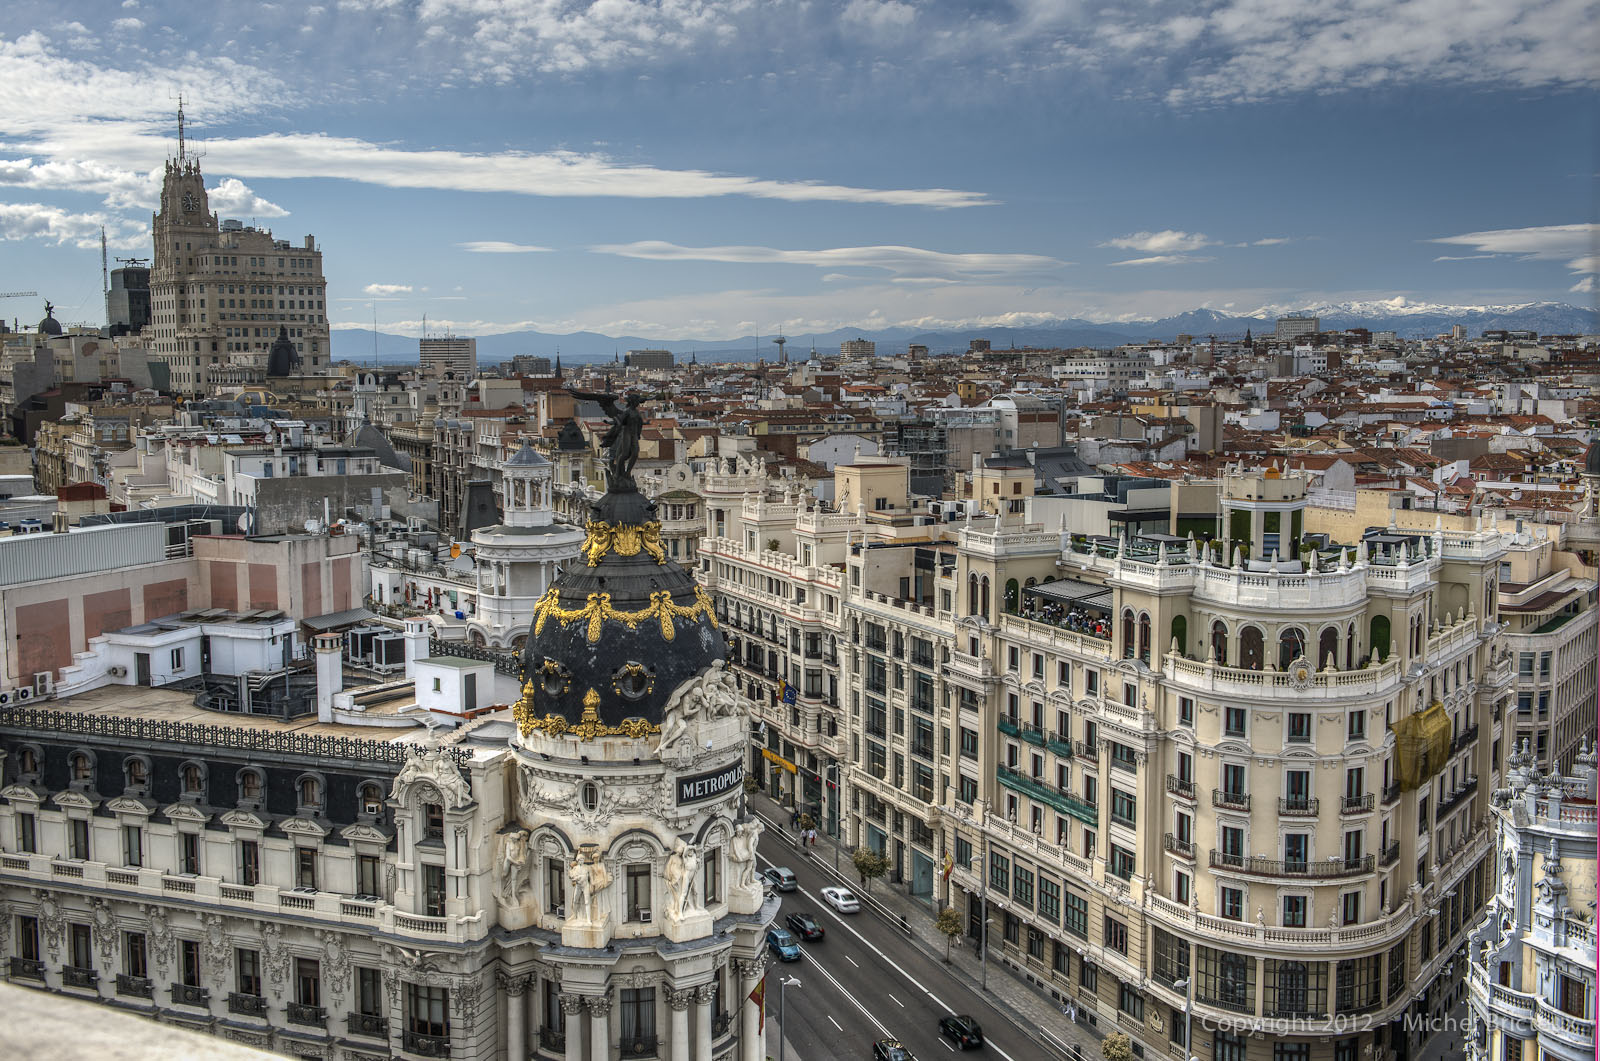 MADRID SKYLINE : Gran Vía